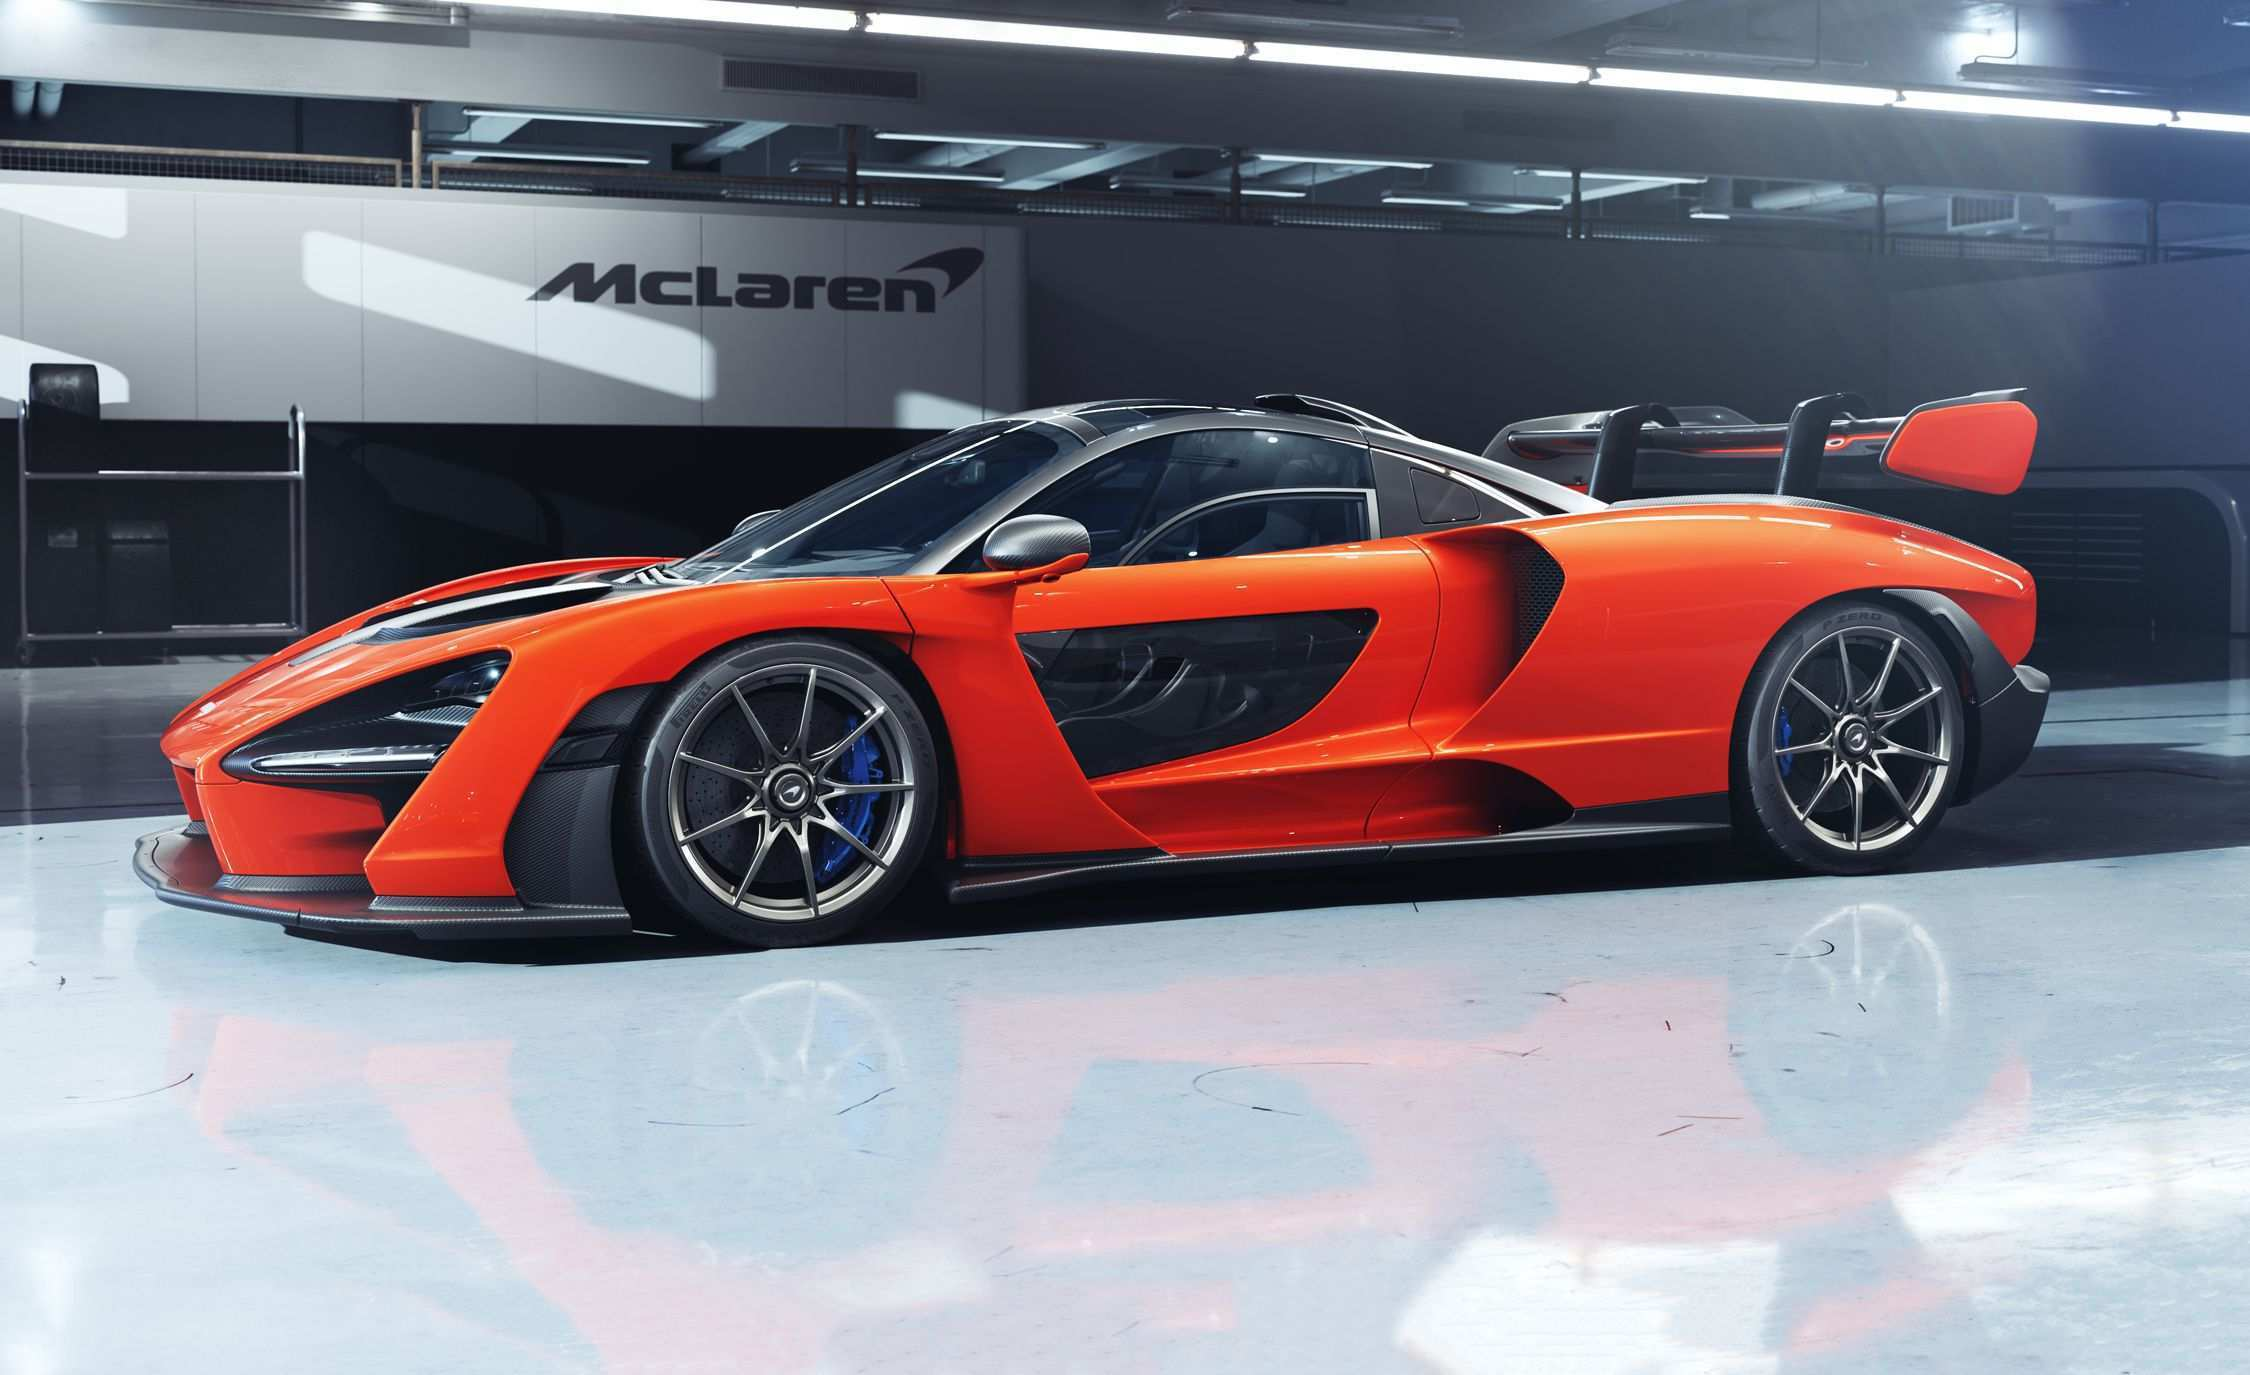 45 Great 2019 Mclaren Sedan Picture with 2019 Mclaren Sedan